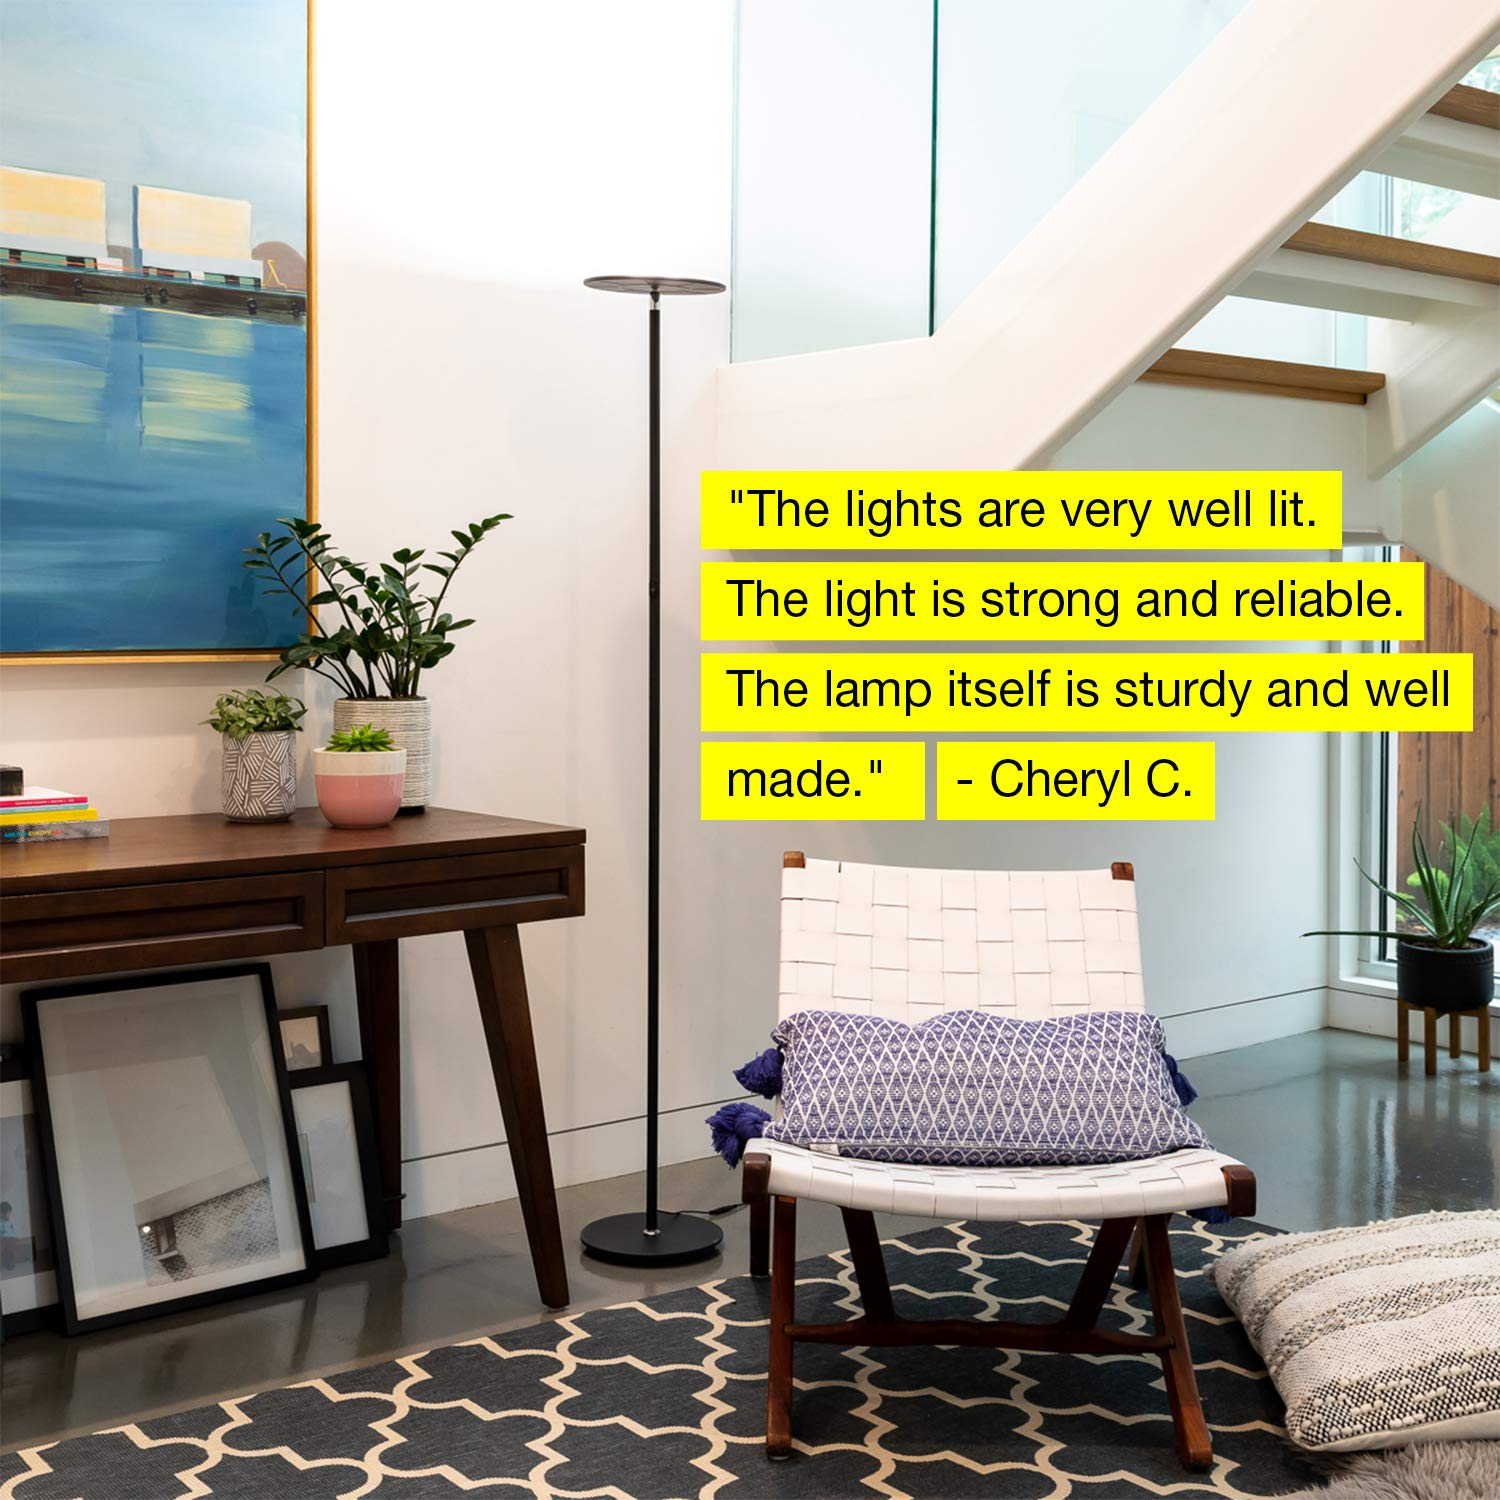 Brightech Sky LED Torchiere Super Bright Floor Lamp   Tall Standing Modern  Pole Light For Living Rooms U0026 Offices   Dimmable Uplight For Reading Books  In ...